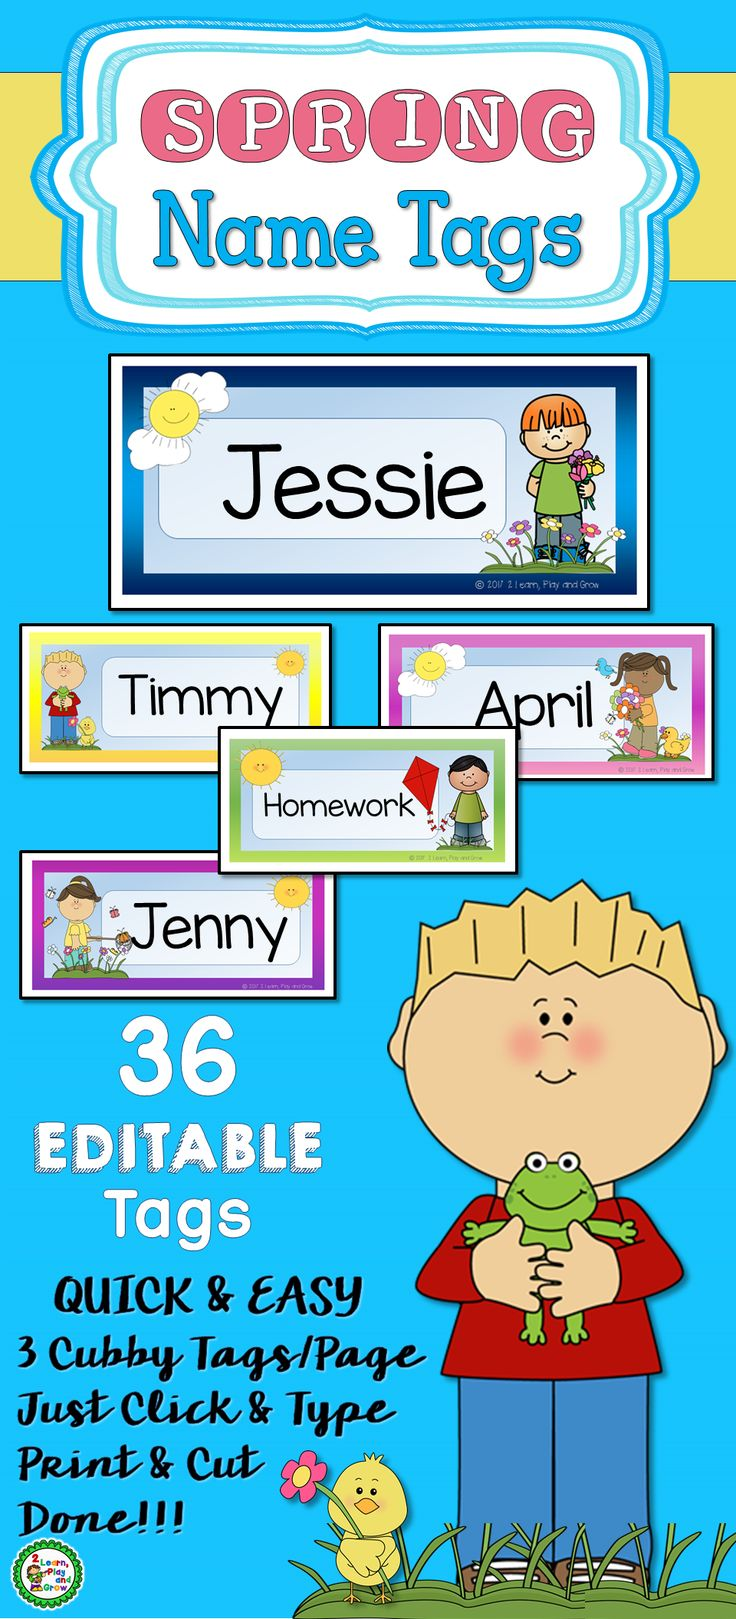 Bring spring into your classroom with these name tags for your children's desks, tables and cubbies.  I love options and I'm sure you do too!  36 different tags!  Match your children's hair and skin color, choose different activities or some of everything.  Either way, your classroom will be blooming with spring time feelings!   Don't forget to brighten up storage bins in your classroom too! Easily editable in free acrobat reader.  Just click, type name and print.